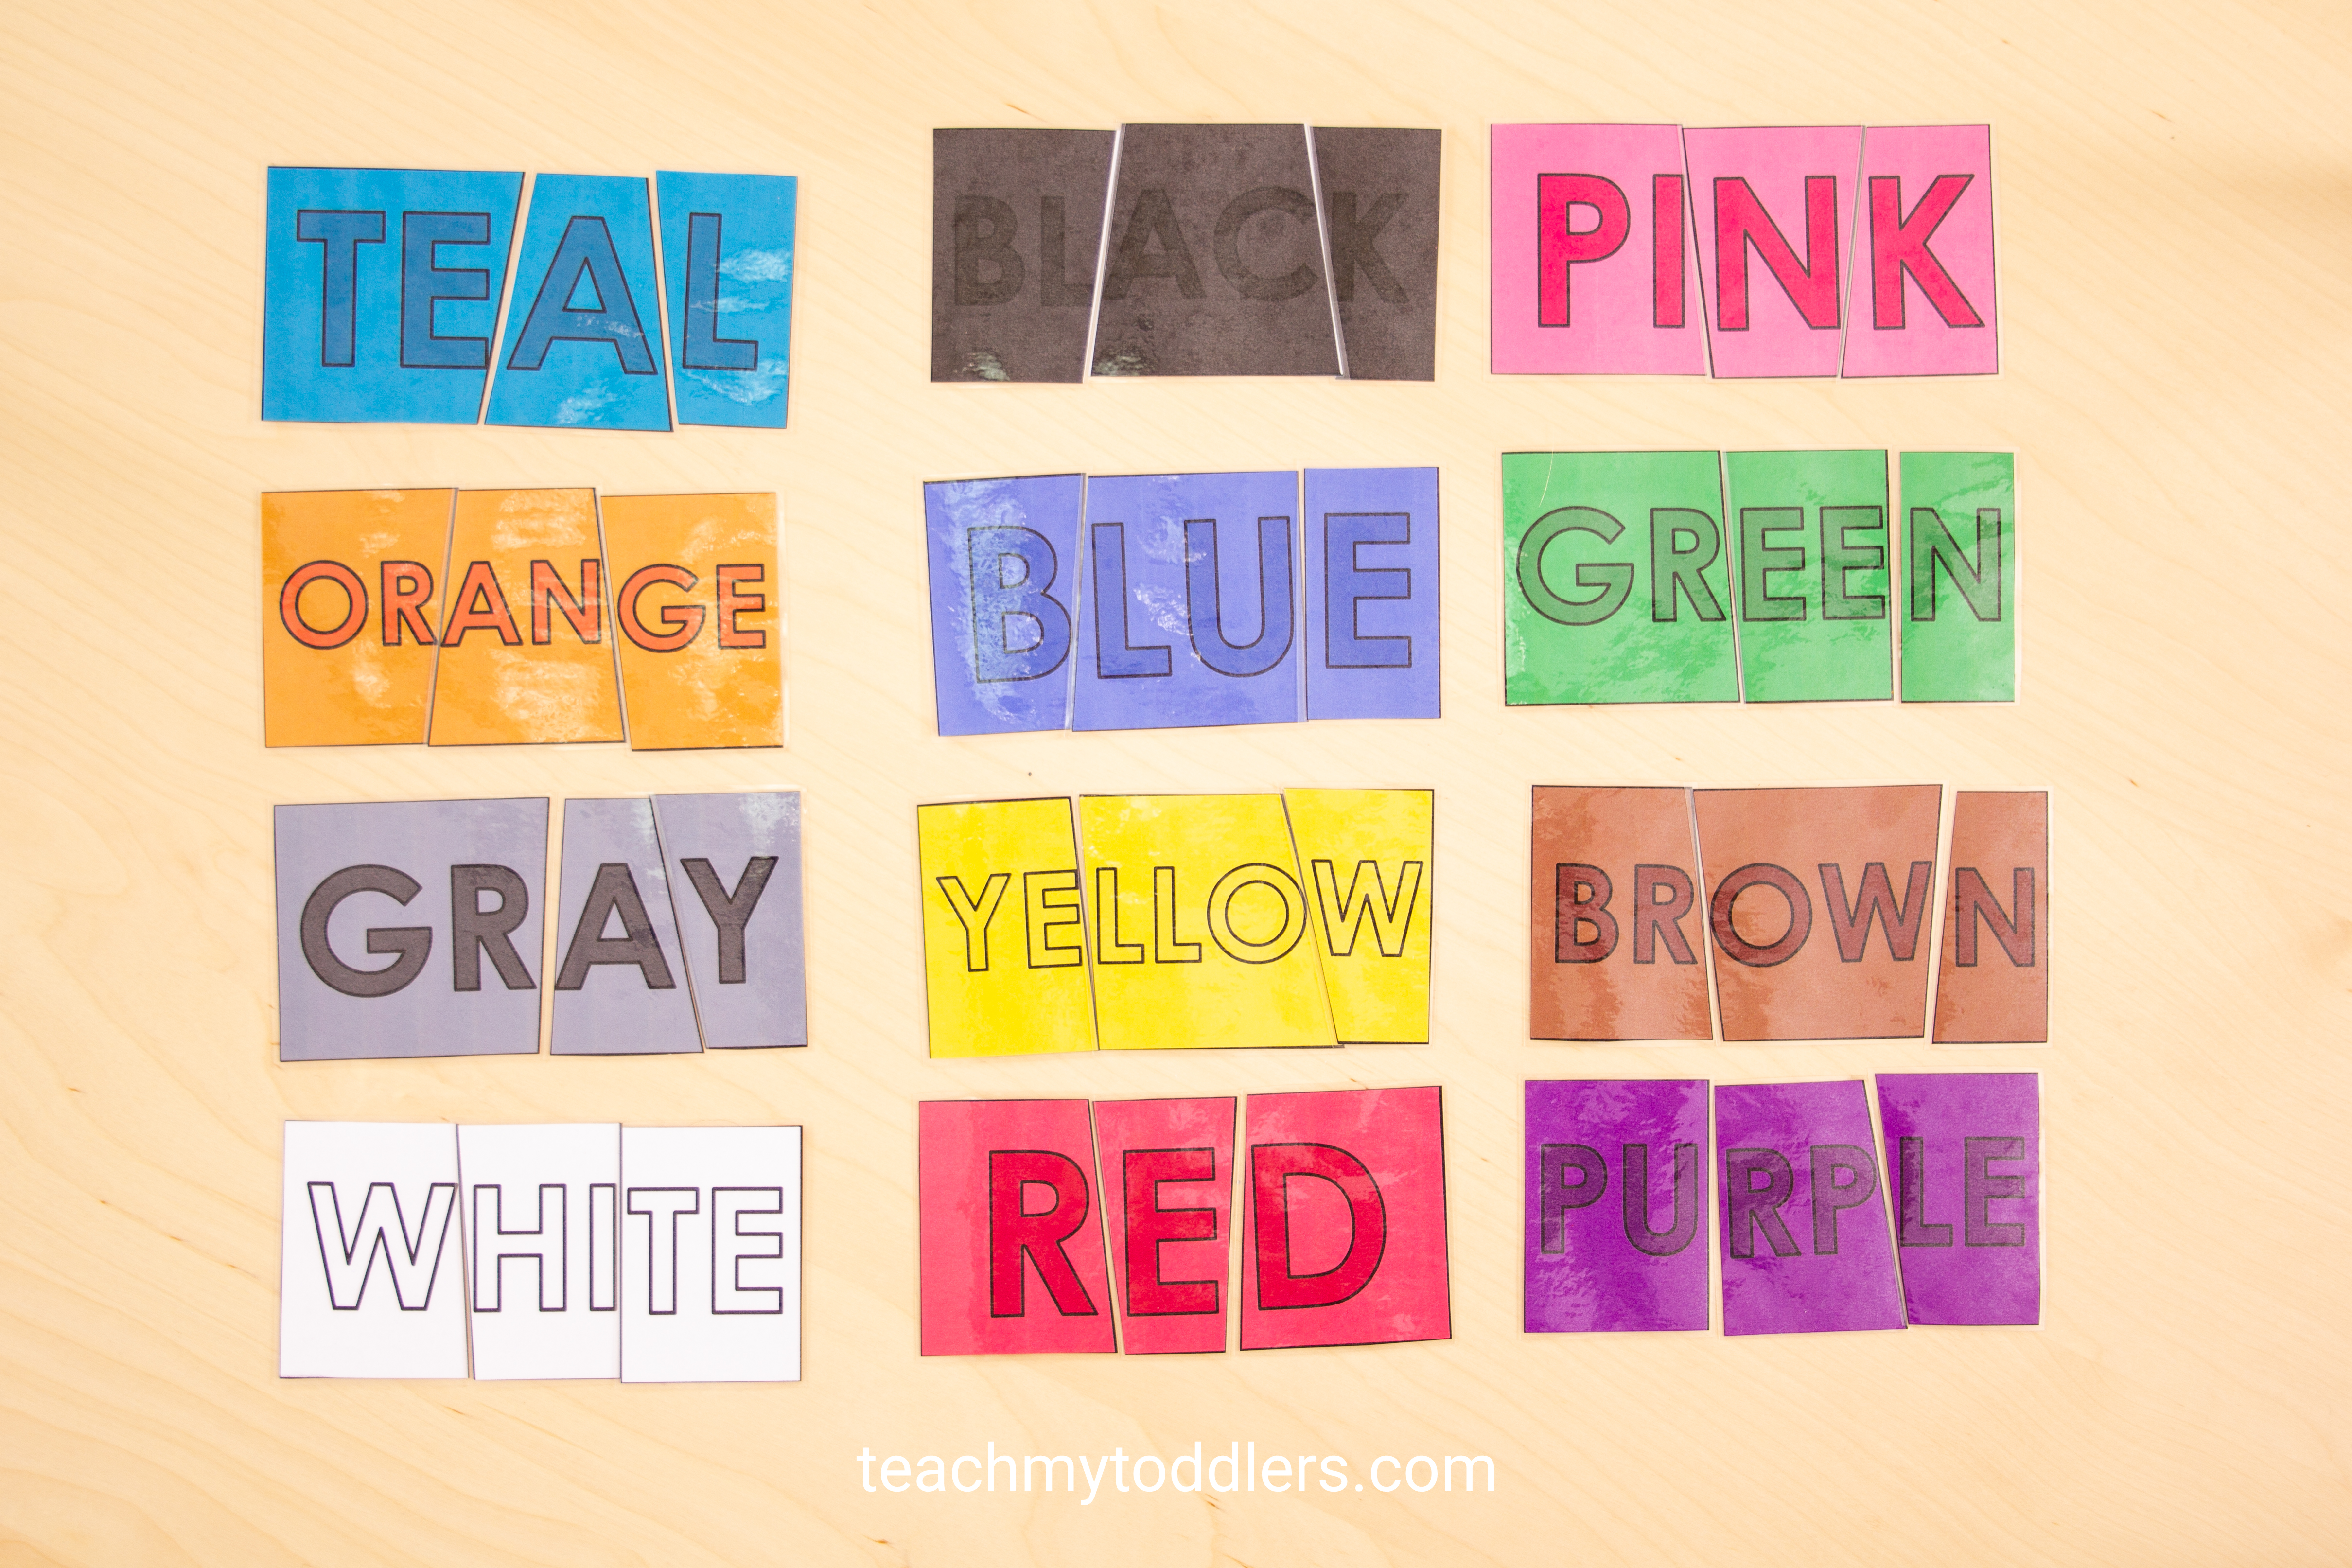 This color puzzle game is a great way to teach your toddlers and preschool kids colors